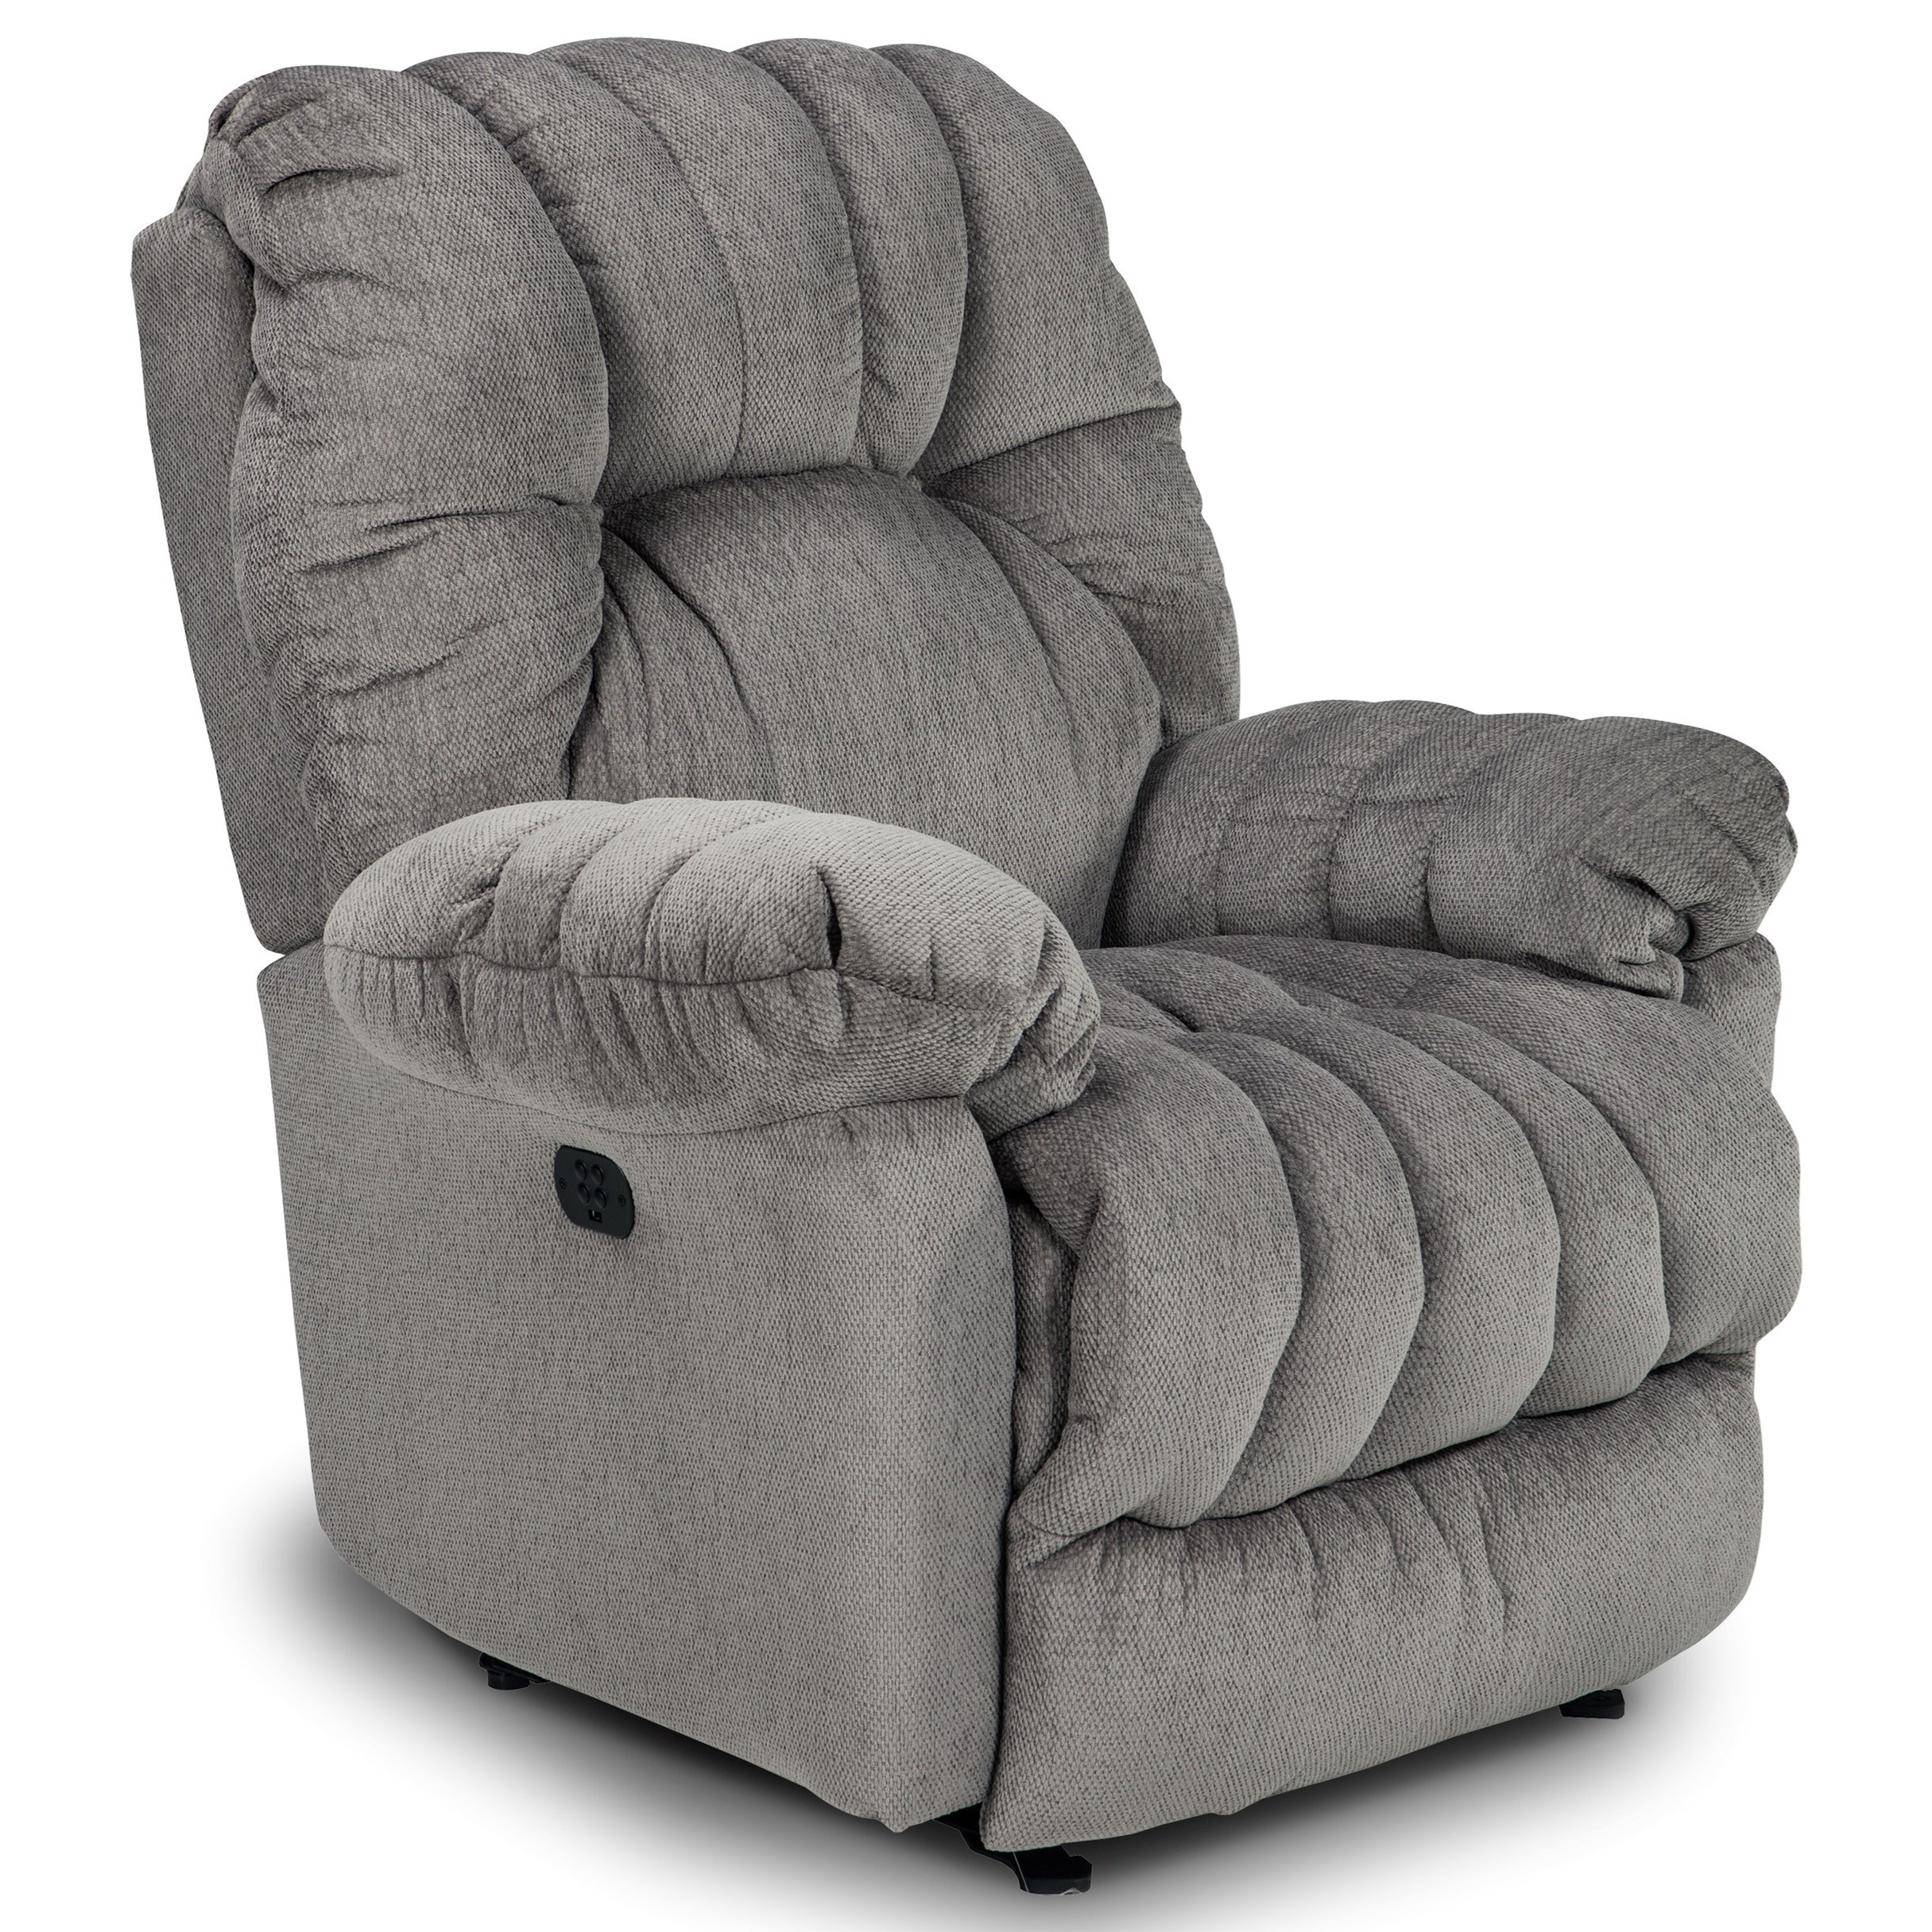 Conen Power Rocker Recliner w/ Pwr Head by Best Home Furnishings at Simply Home by Lindy's